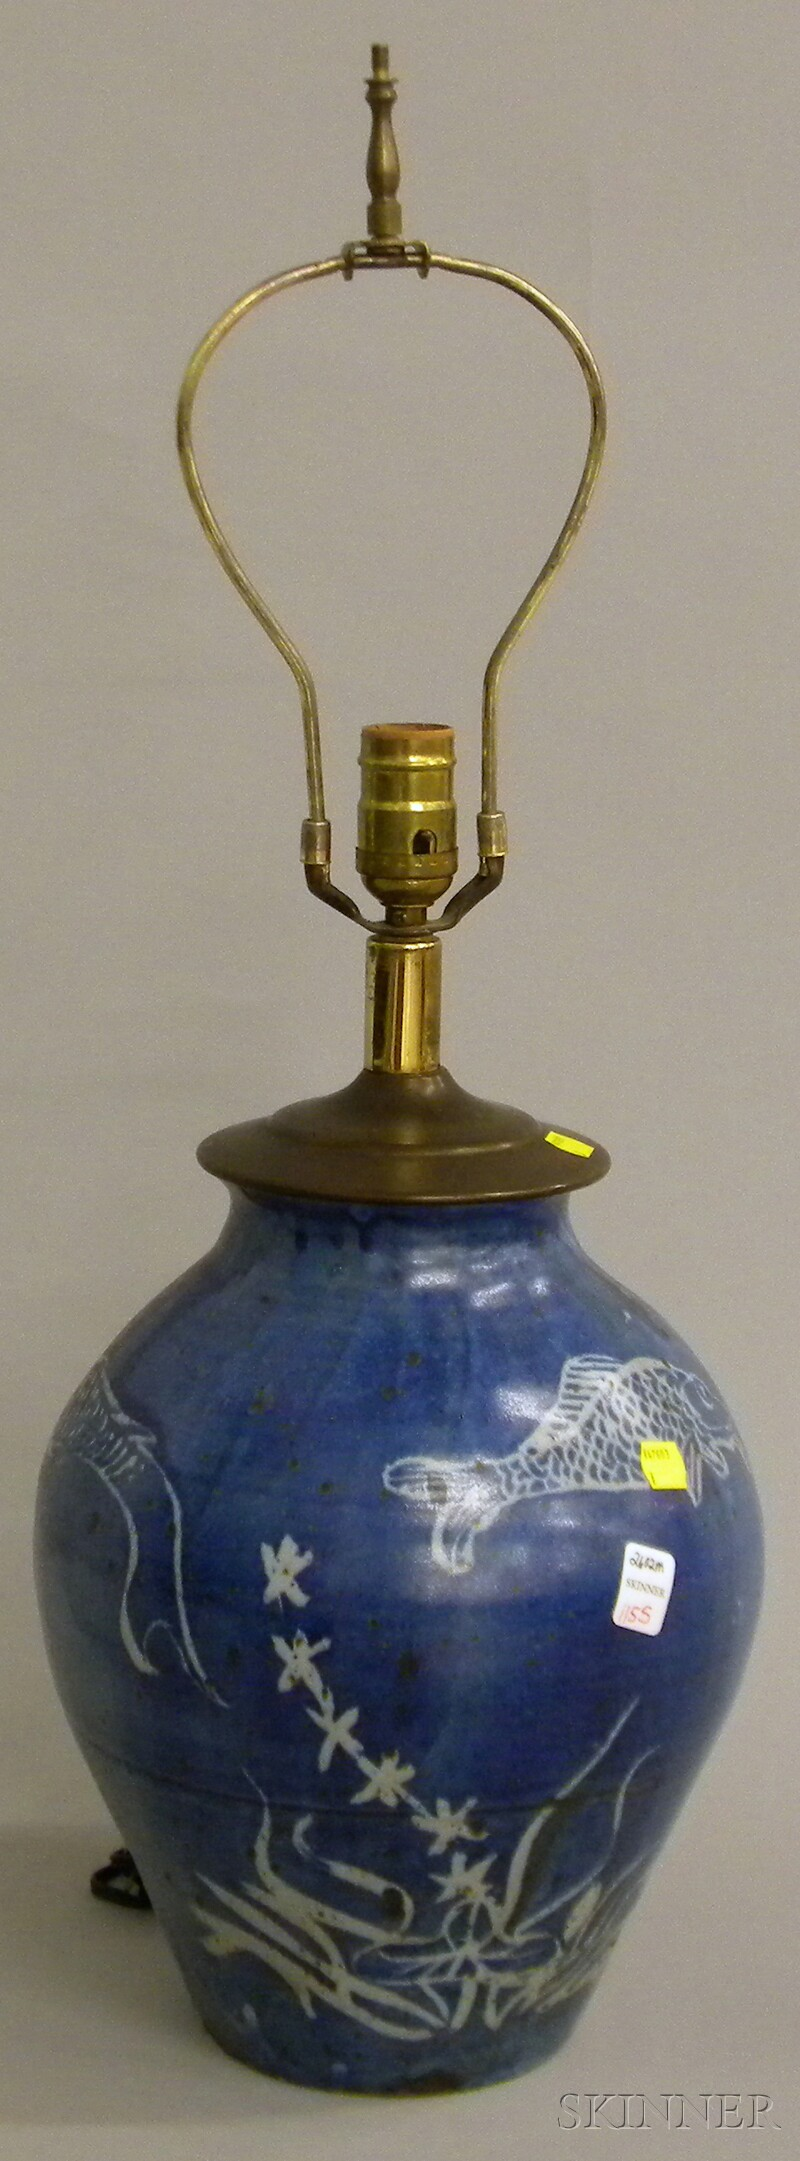 Blue and White-decorated Stoneware Table Lamp Base.